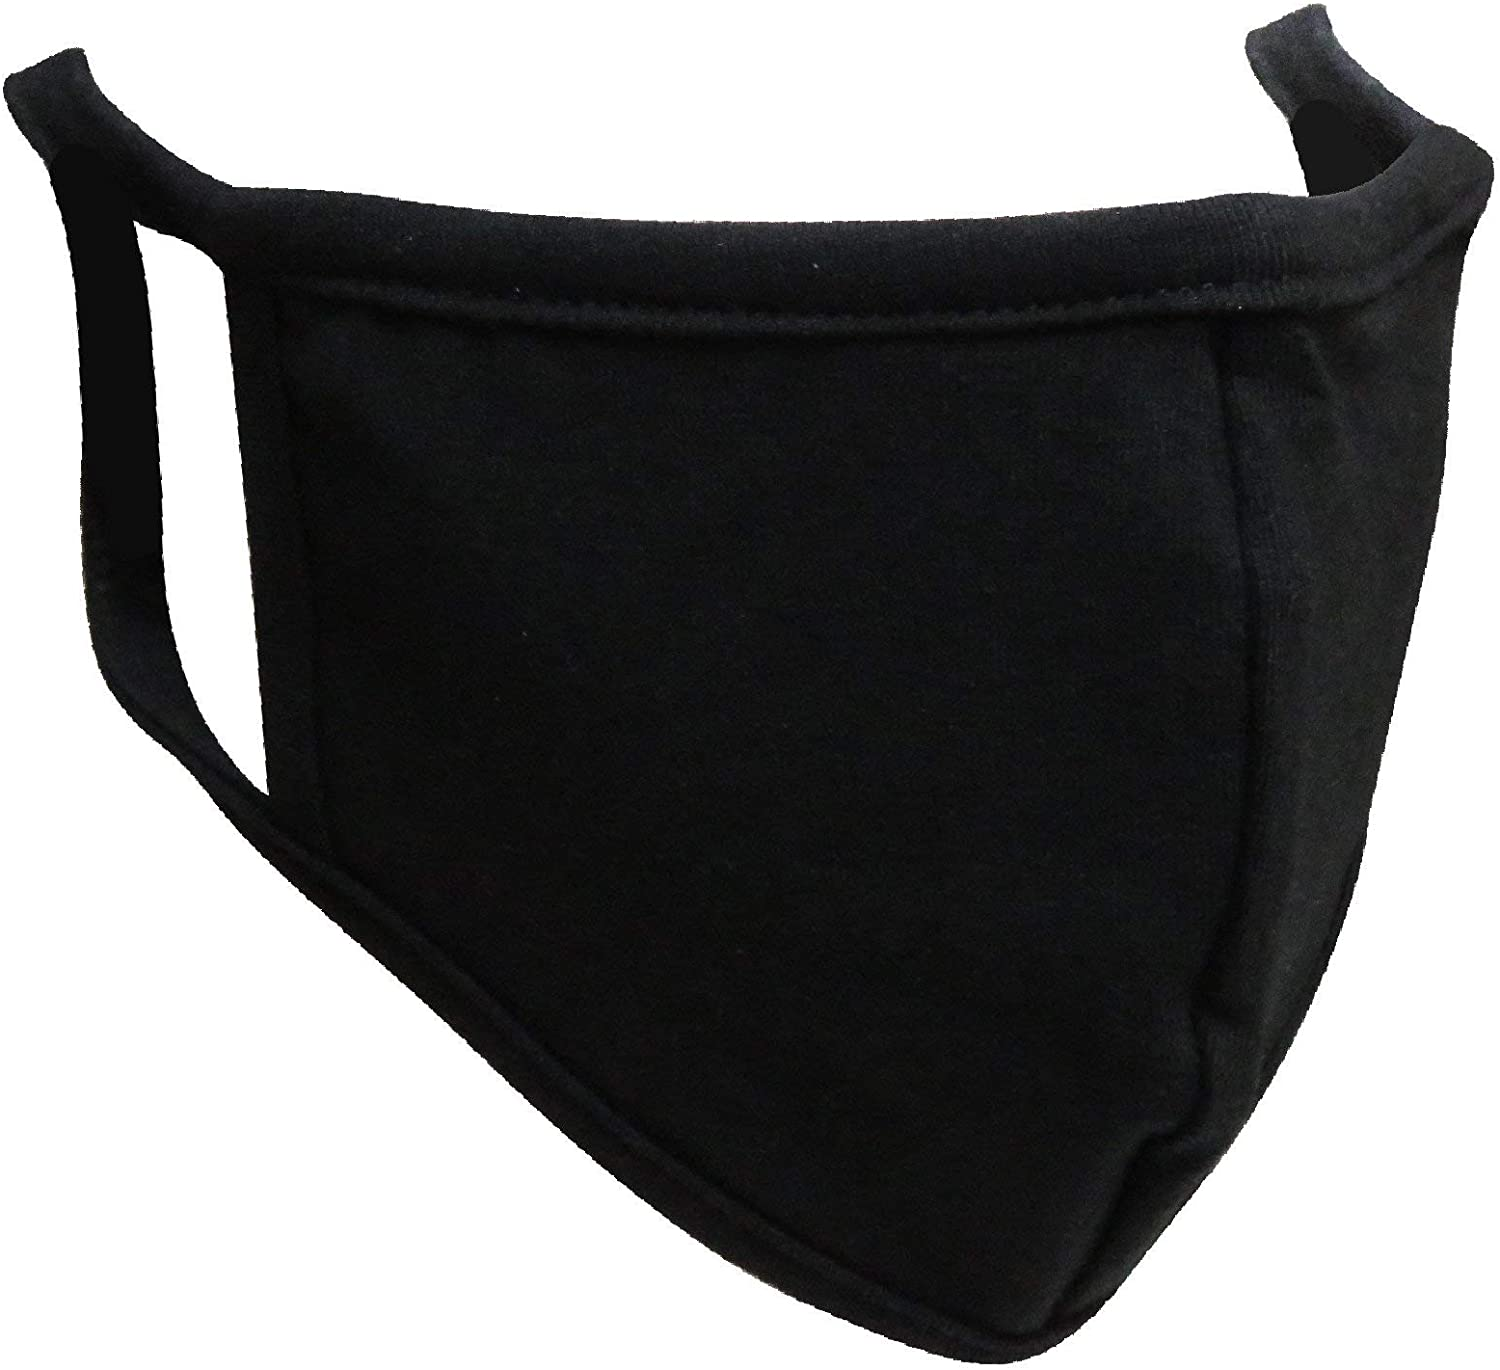 (MADE IN USA) Washable & Reusable Cotton Facial Mask - Face Mask & Coverings(Black-5 Mask)